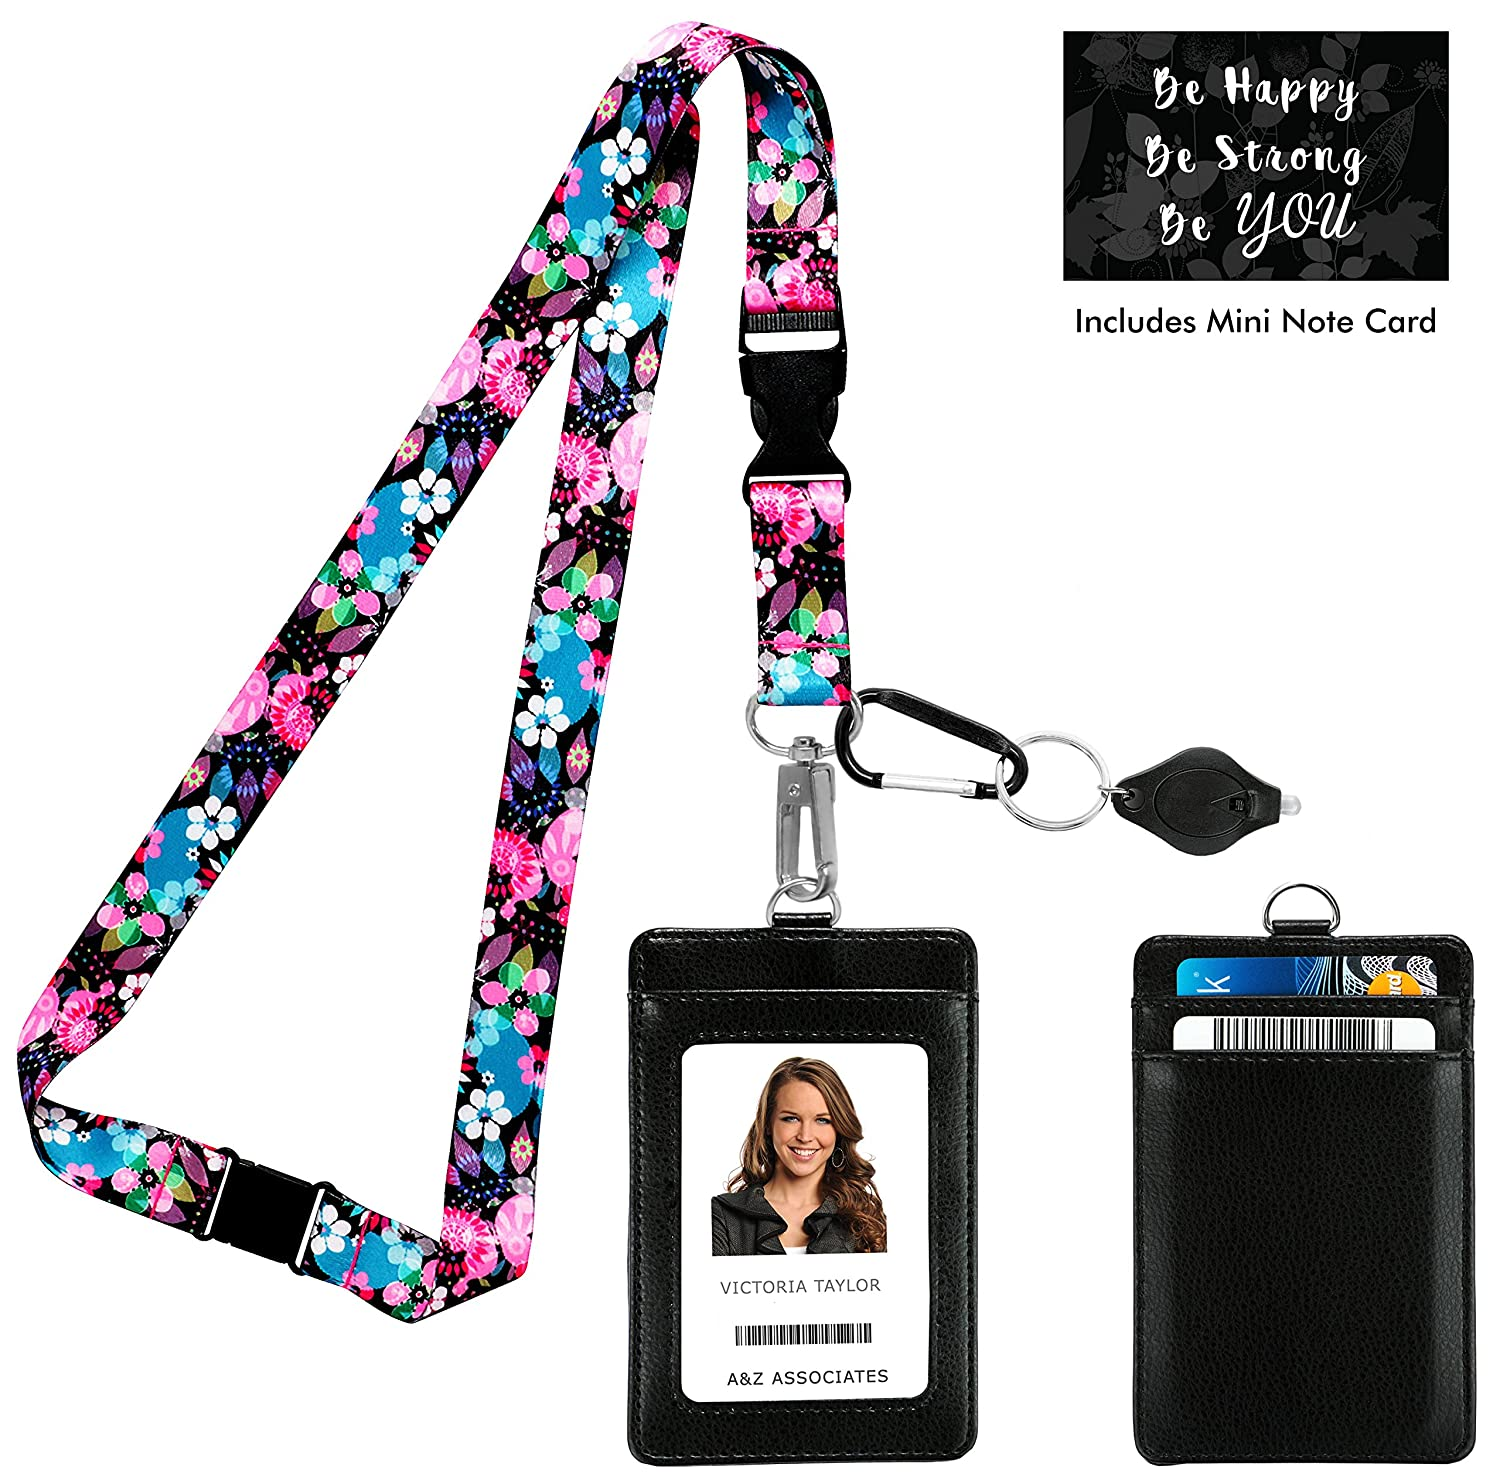 Wild Flowers Blossom Print Lanyard with PU Leather ID Badge Holder with 2 Card Holder Pockets, Safety Breakaway Clip. Free Gift of Carabiner Keychain Flashlight. Lanyard for cruise, work and trips. One In A Millionaire